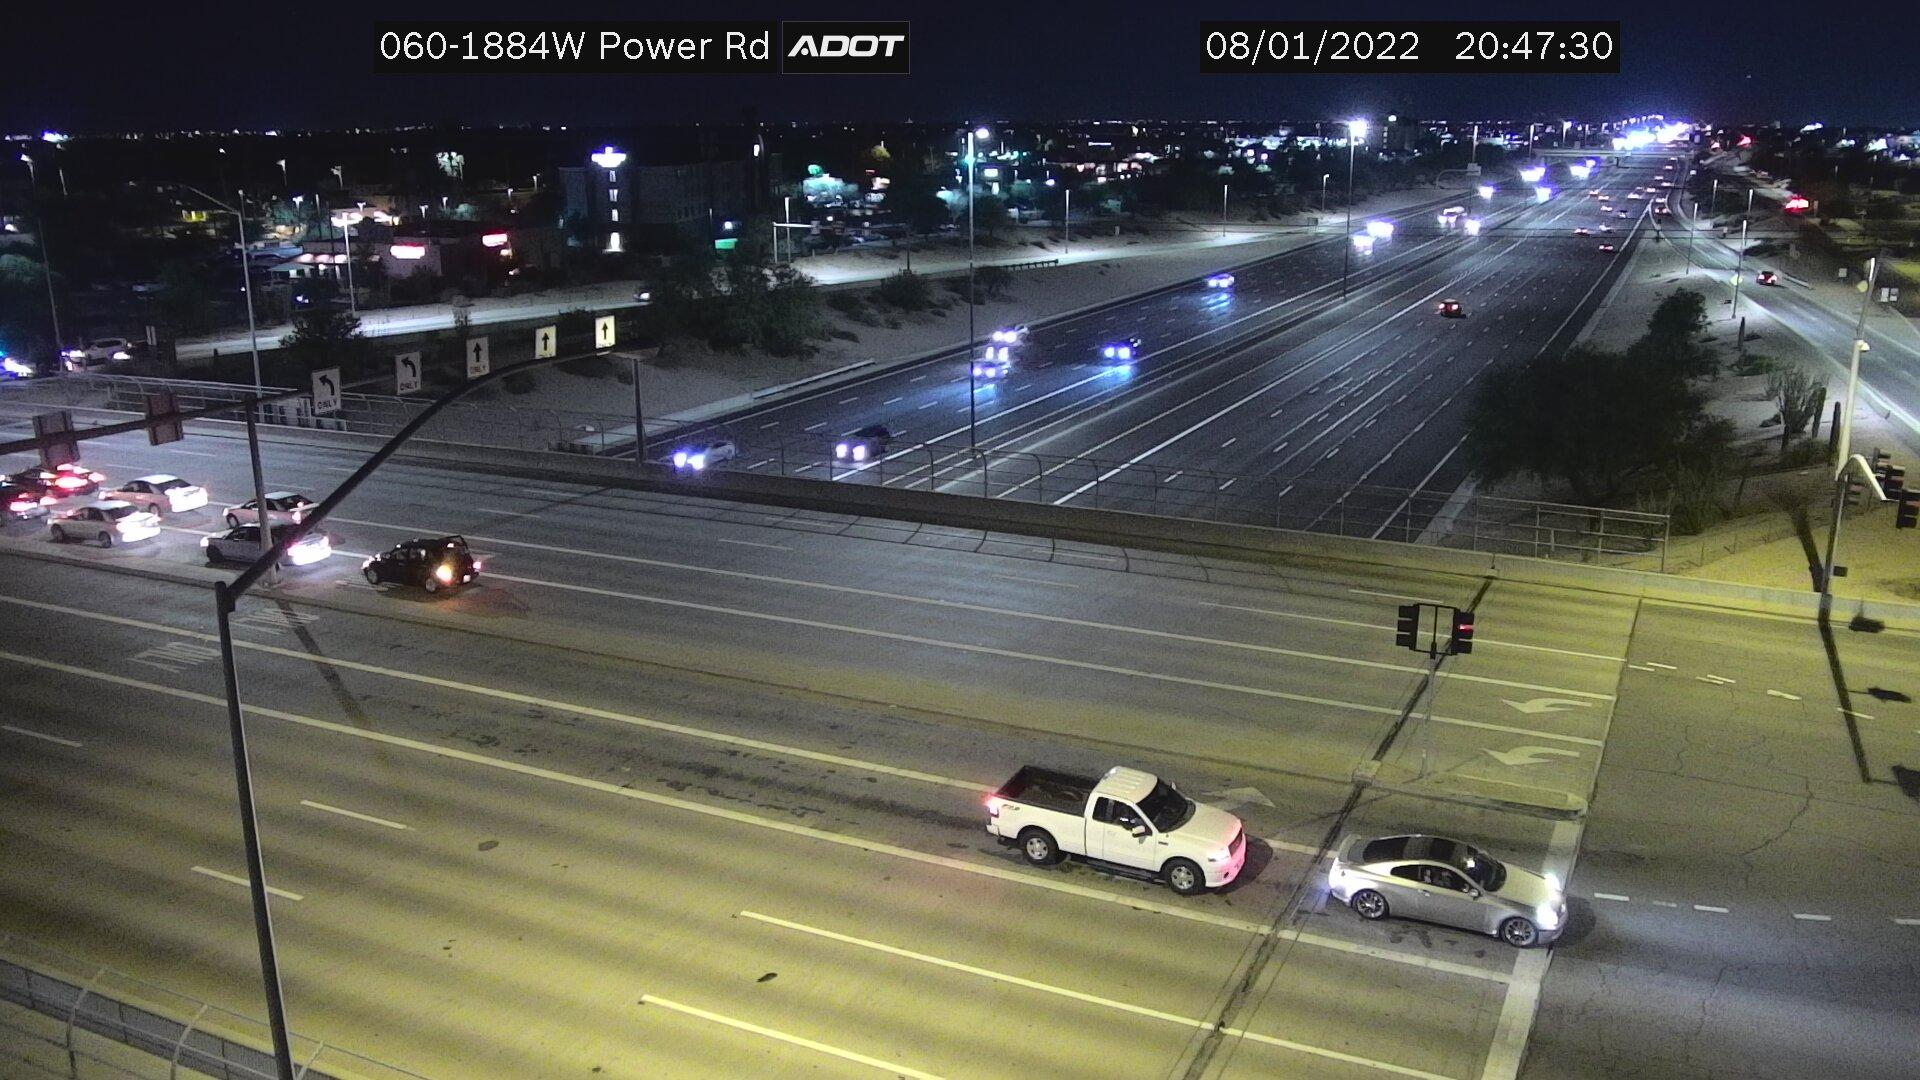 Webcam Leisure World: US 60 @ Power